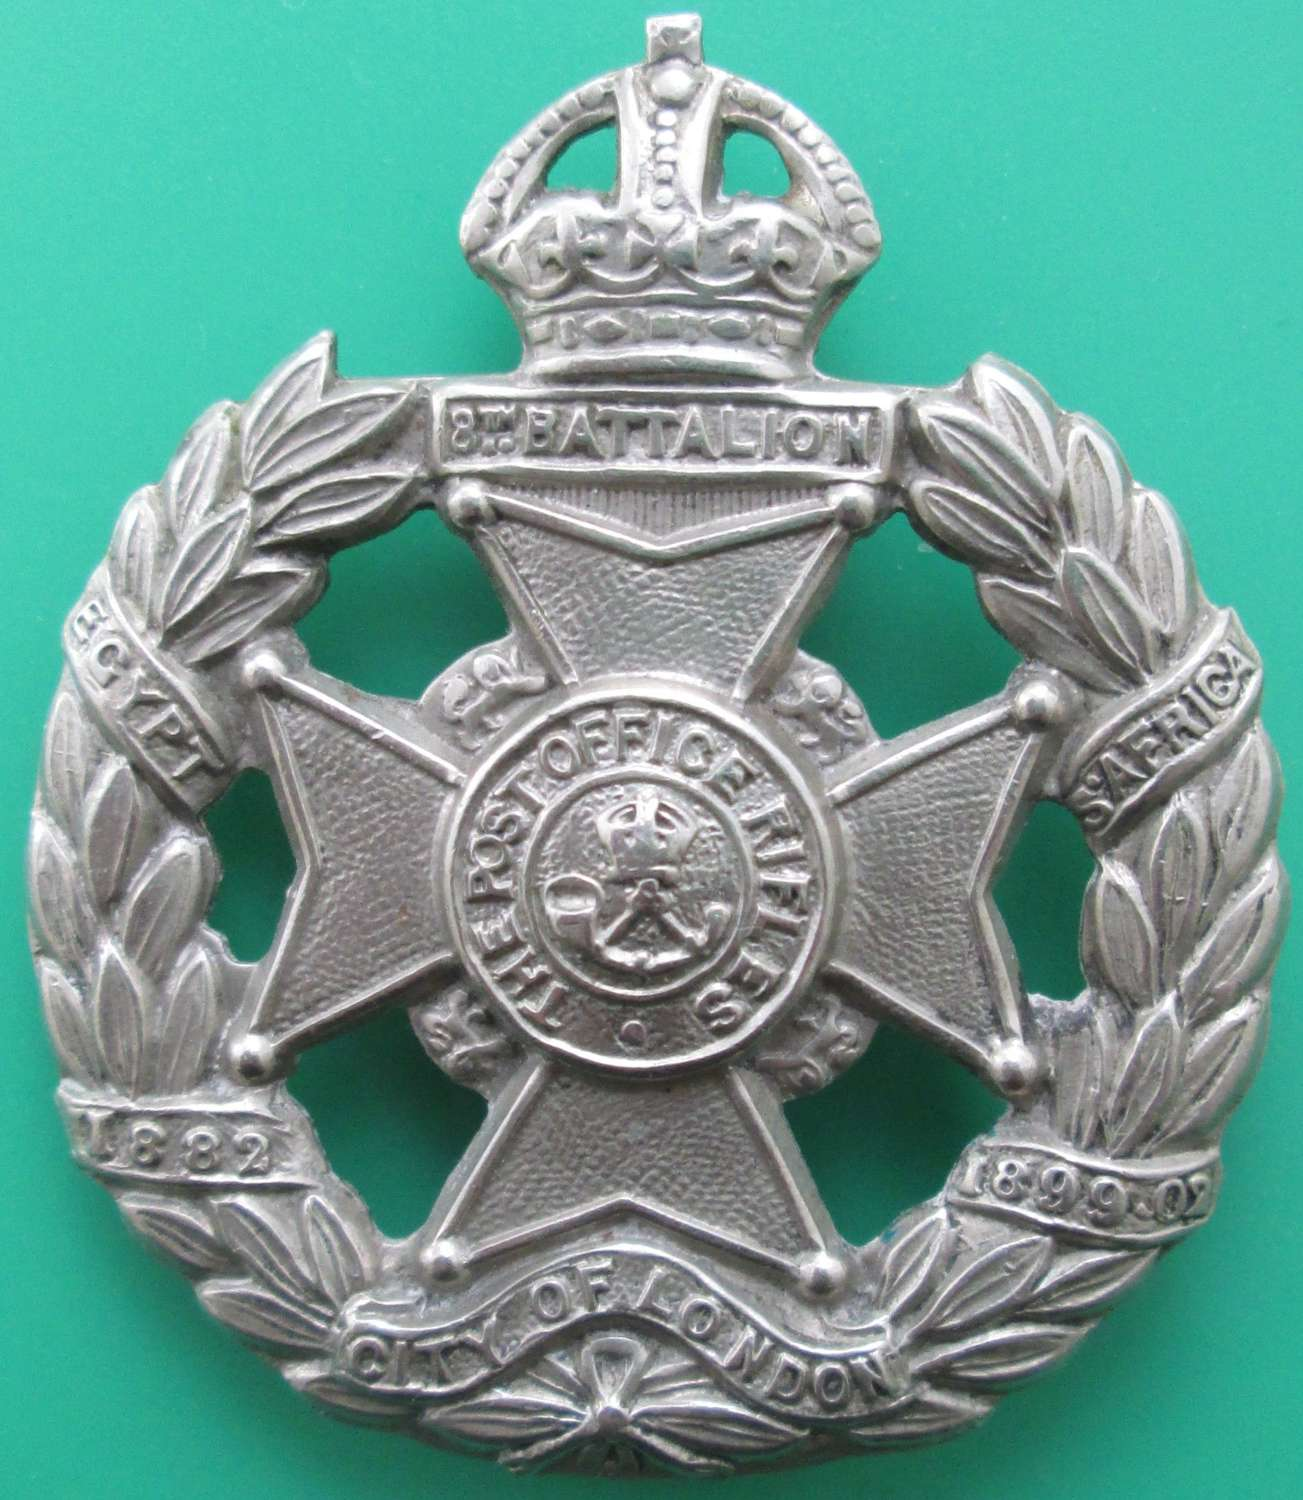 A CITY OF LONDON REGIMENT,  (POST OFFICE RIFLES) CAP BADGE